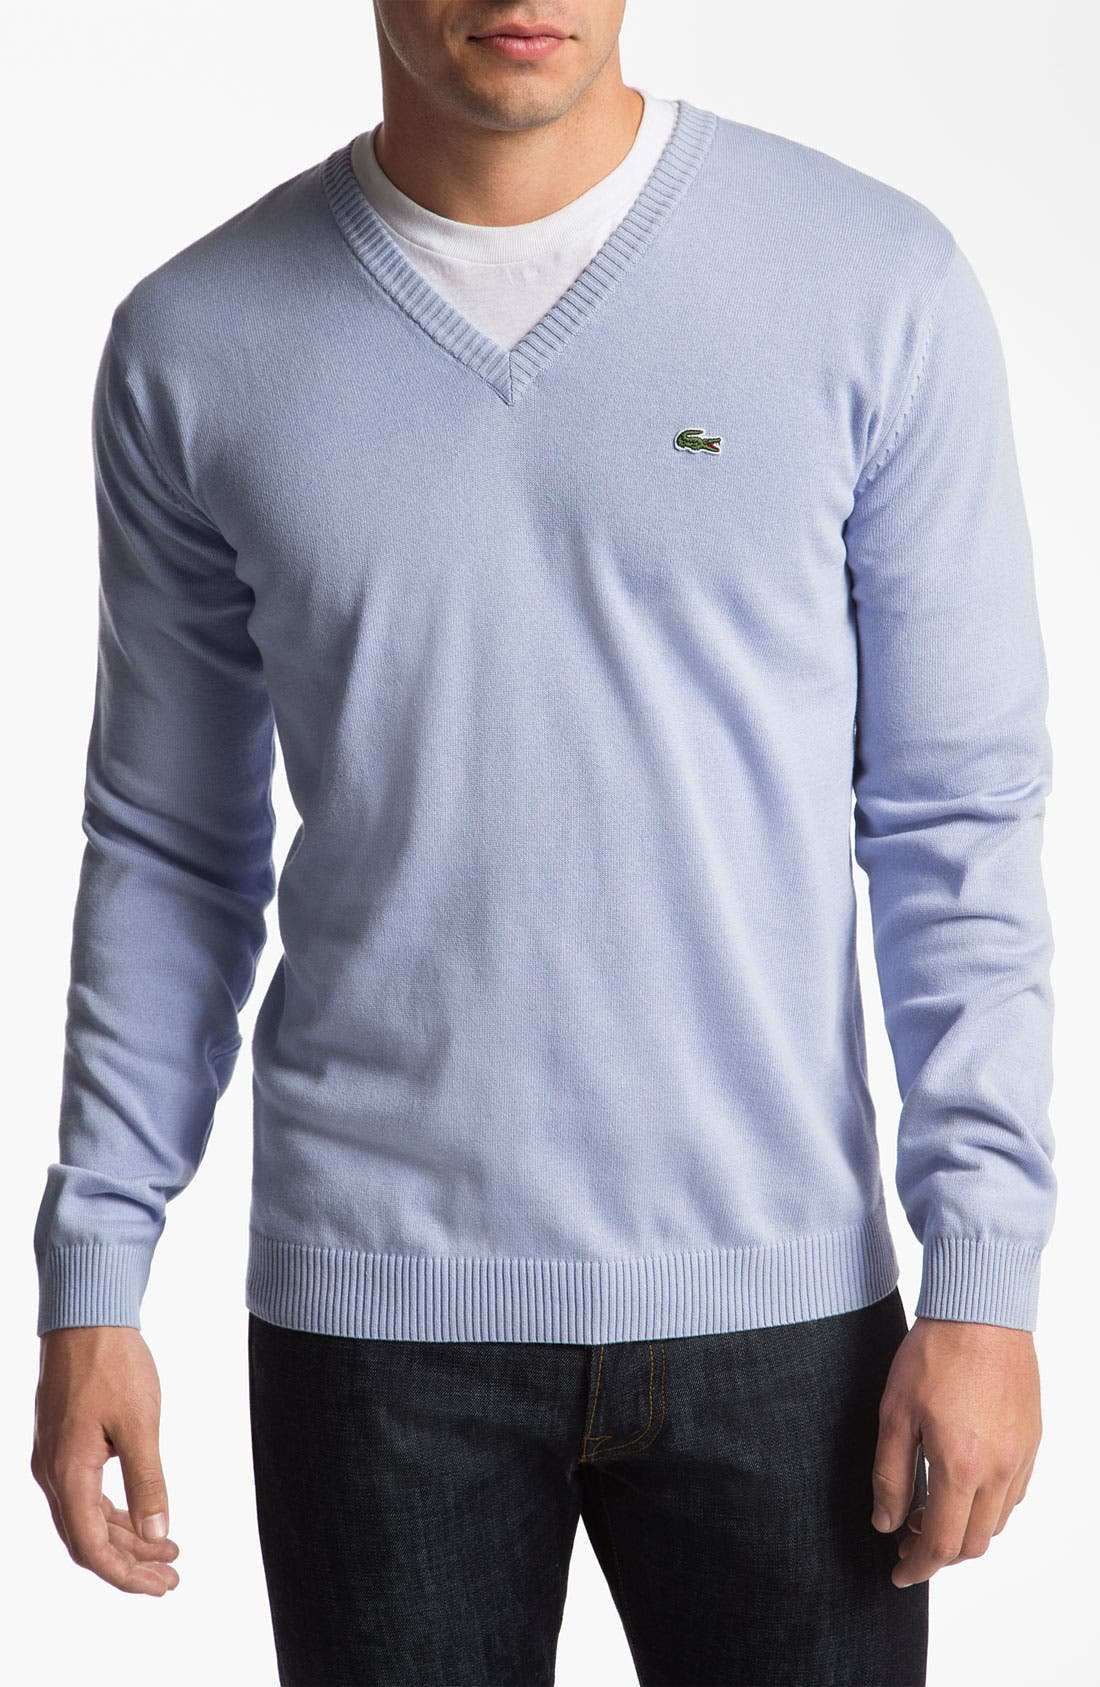 Alternate Image 1 Selected - Lacoste 'Classic' V-Neck Sweater